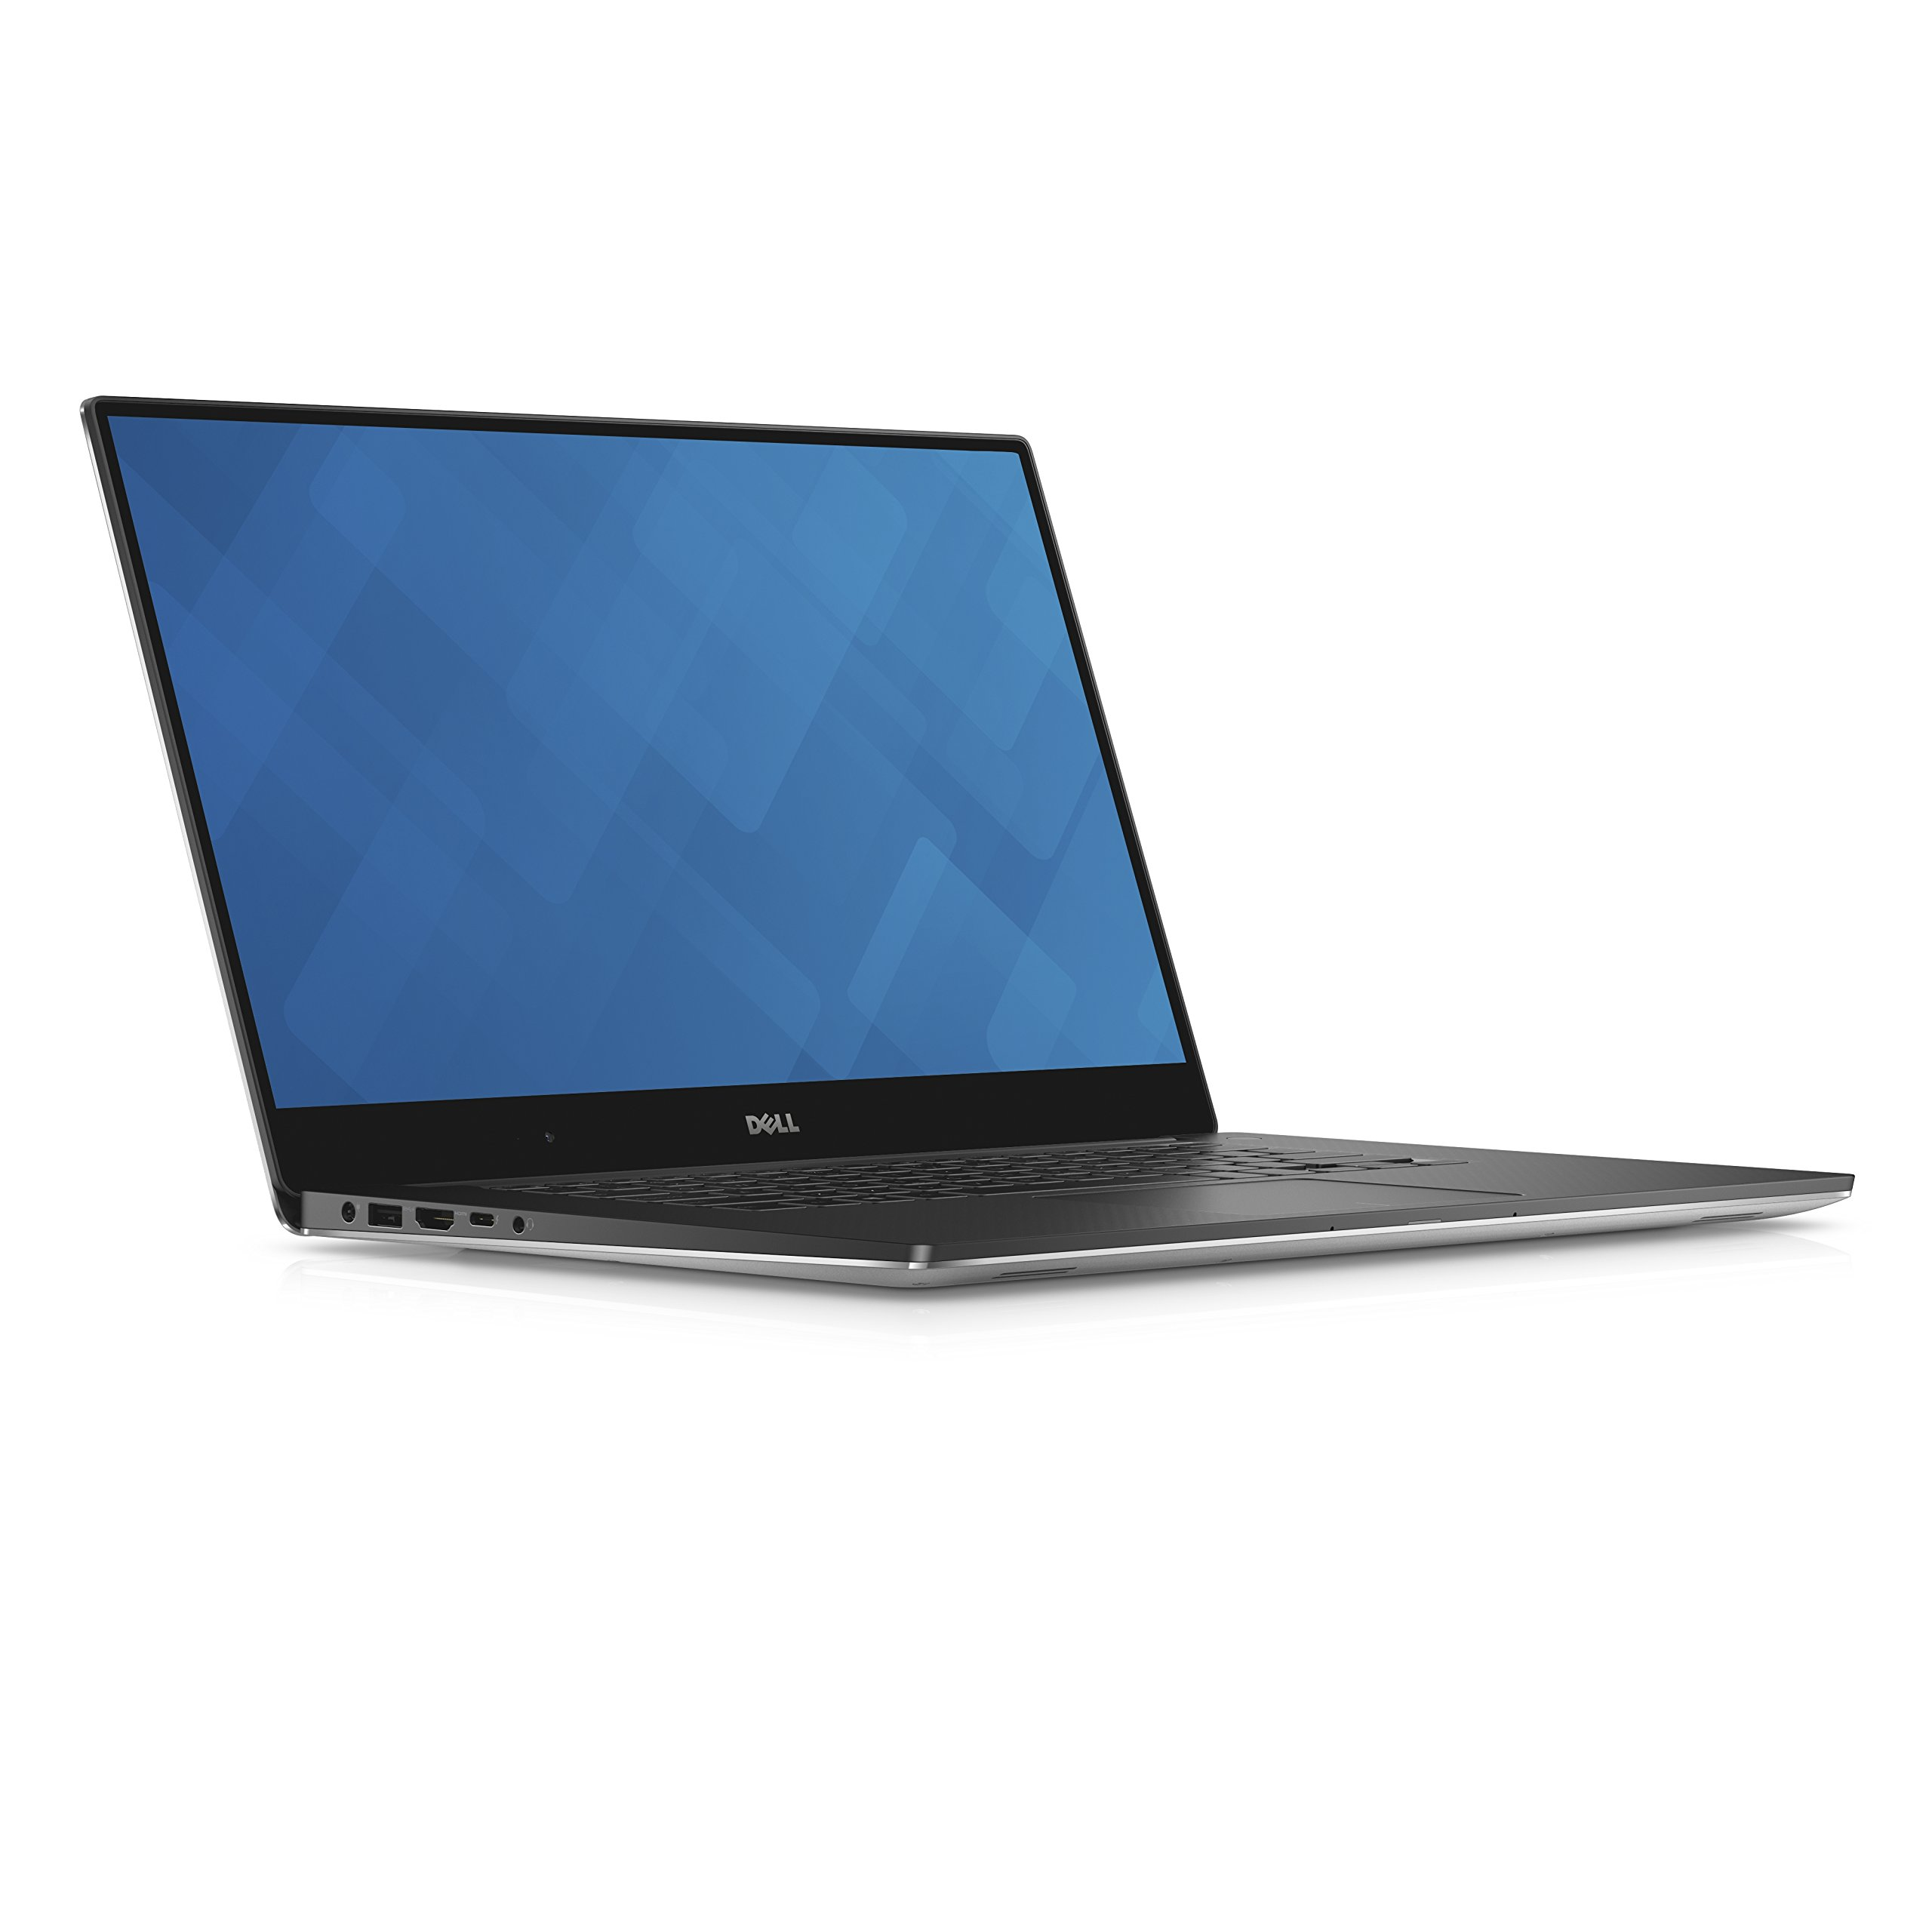 "Dell XPS 15 9560 Laptop - 0NK7T (15"" Display, i5-7300HQ 2.50GHz, 8GB DDR4, 1TB HDD, 32GB SSD, GTX 1050, Thunderbolt 3, Backlit Keyboard, Windows 10 Pro 64) by Dell"